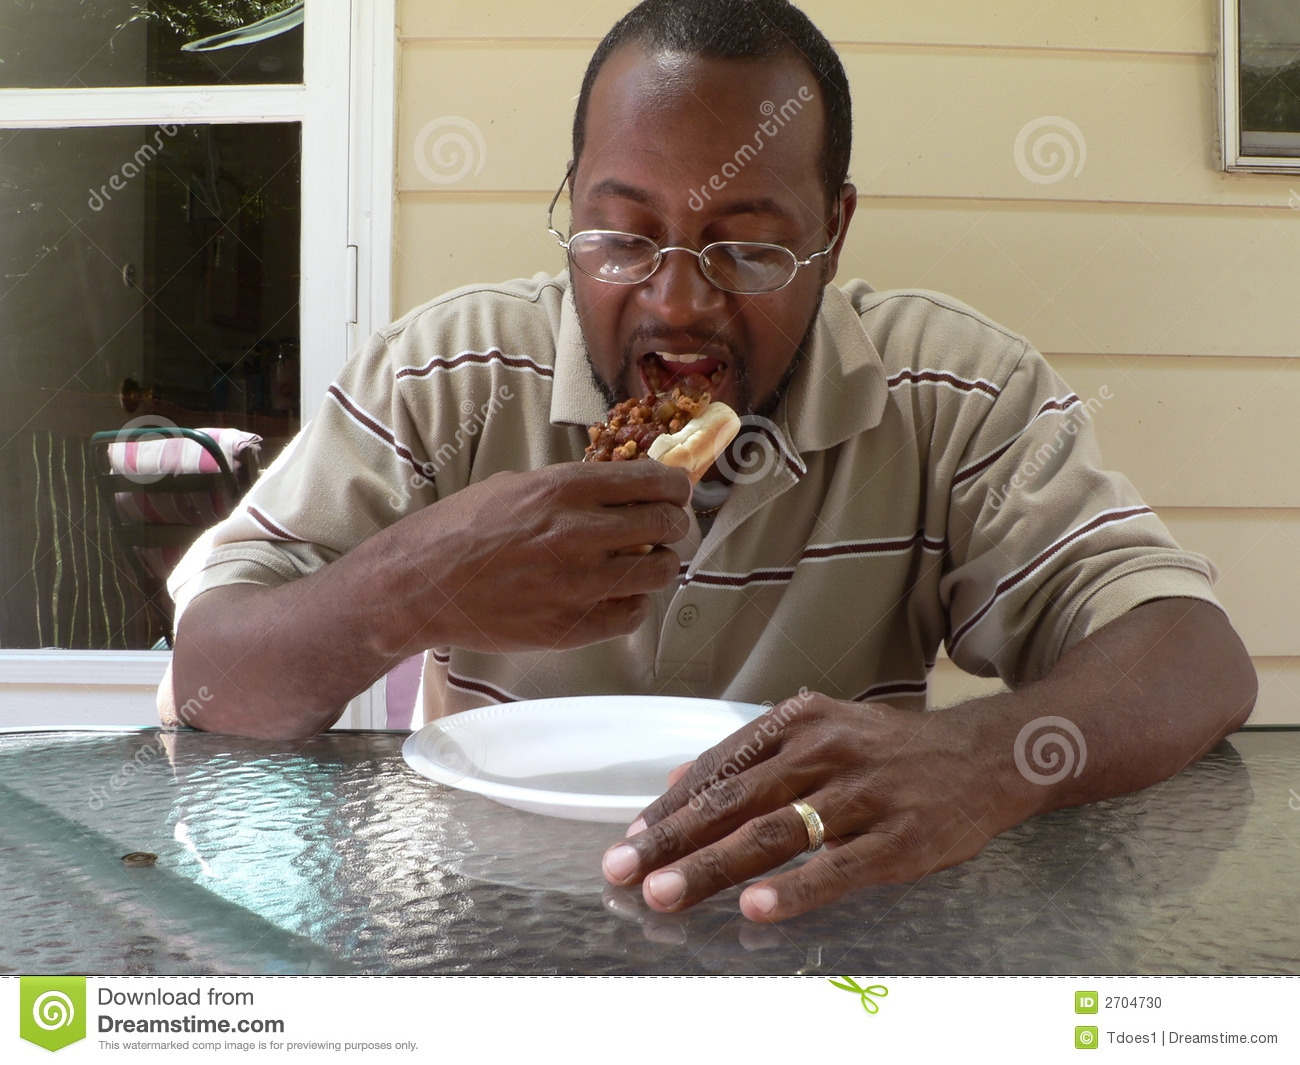 Man Eating A Chili Hotdog 2 Stock Photo - Image: 2704730